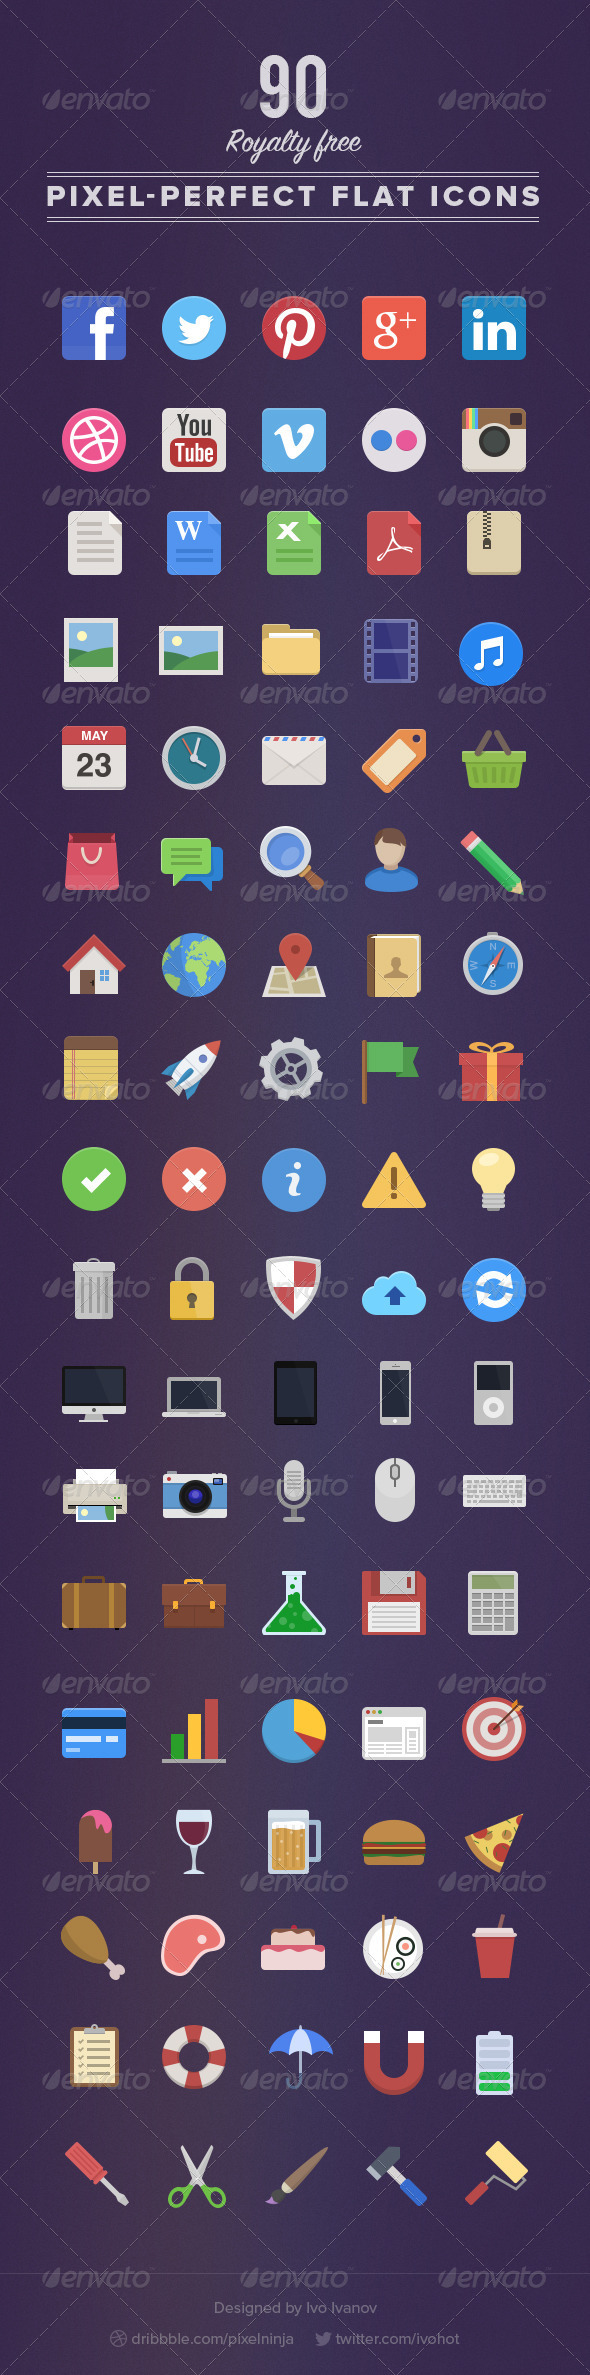 GraphicRiver 90 Royalty Free Flat Icons 5007901